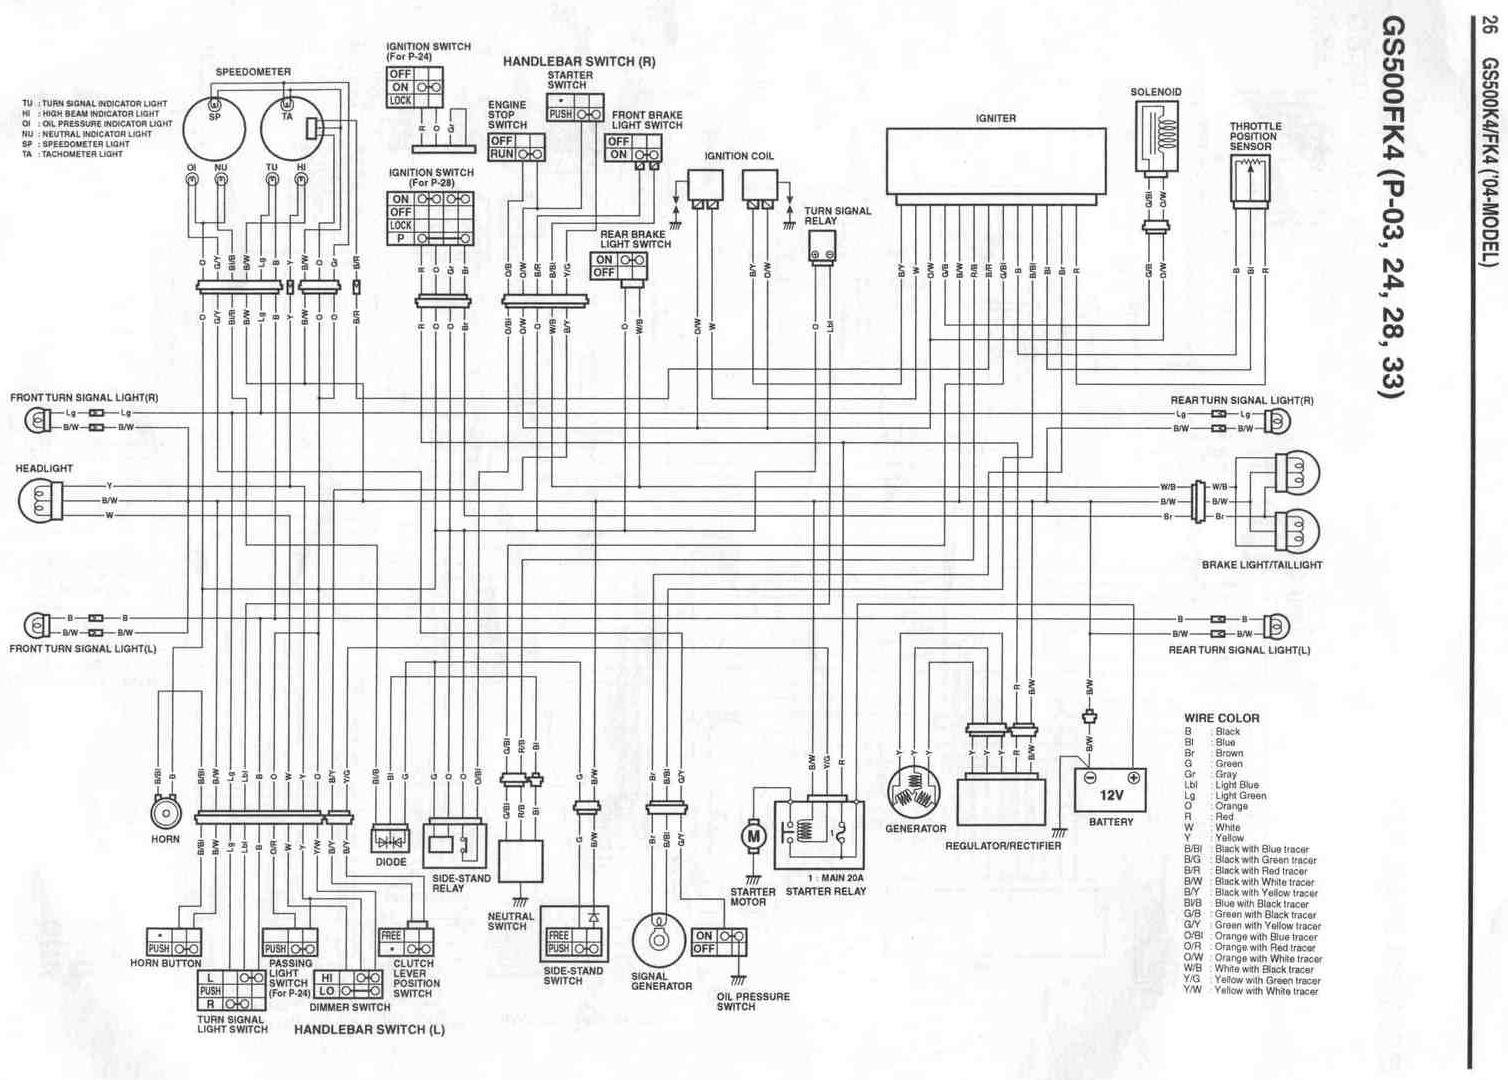 Suzuki_WiringDiagram_04?resize\\\=665%2C476 erm5220r wiring diagram honeywell eim wiring \u2022 edmiracle co  at eliteediting.co